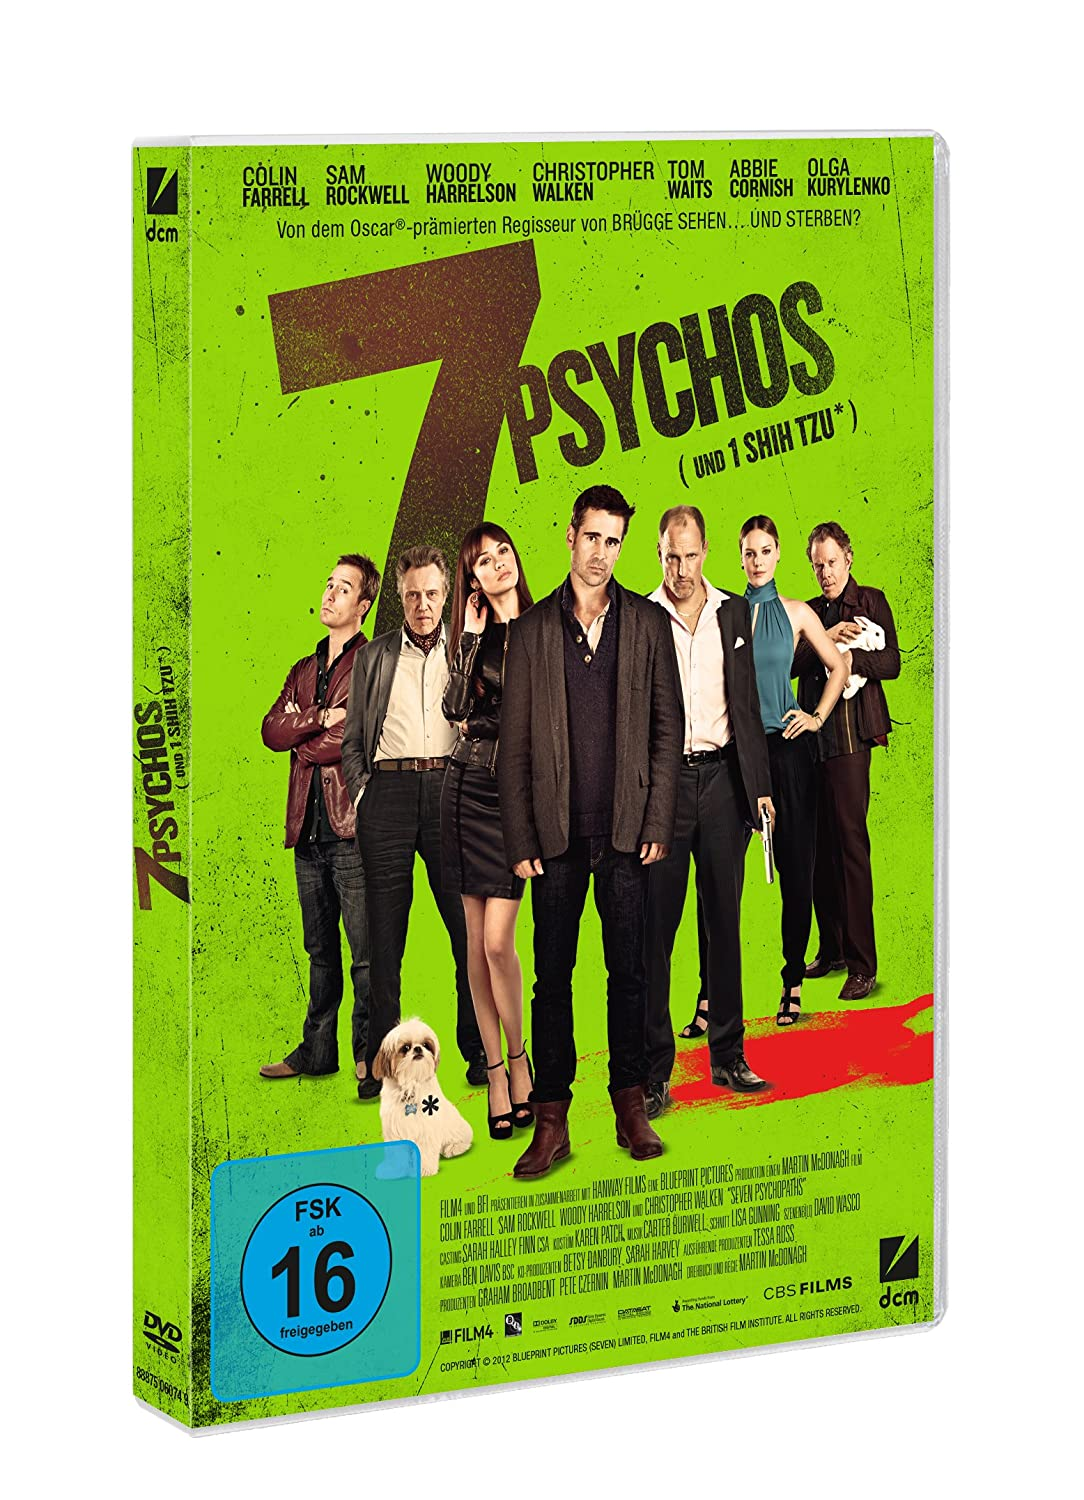 7 psychos alemania dvd amazon colin farrell woody 7 psychos alemania dvd amazon colin farrell woody harrelson sam rockwell christopher walken olga kurylenko abbie cornish tom waits malvernweather